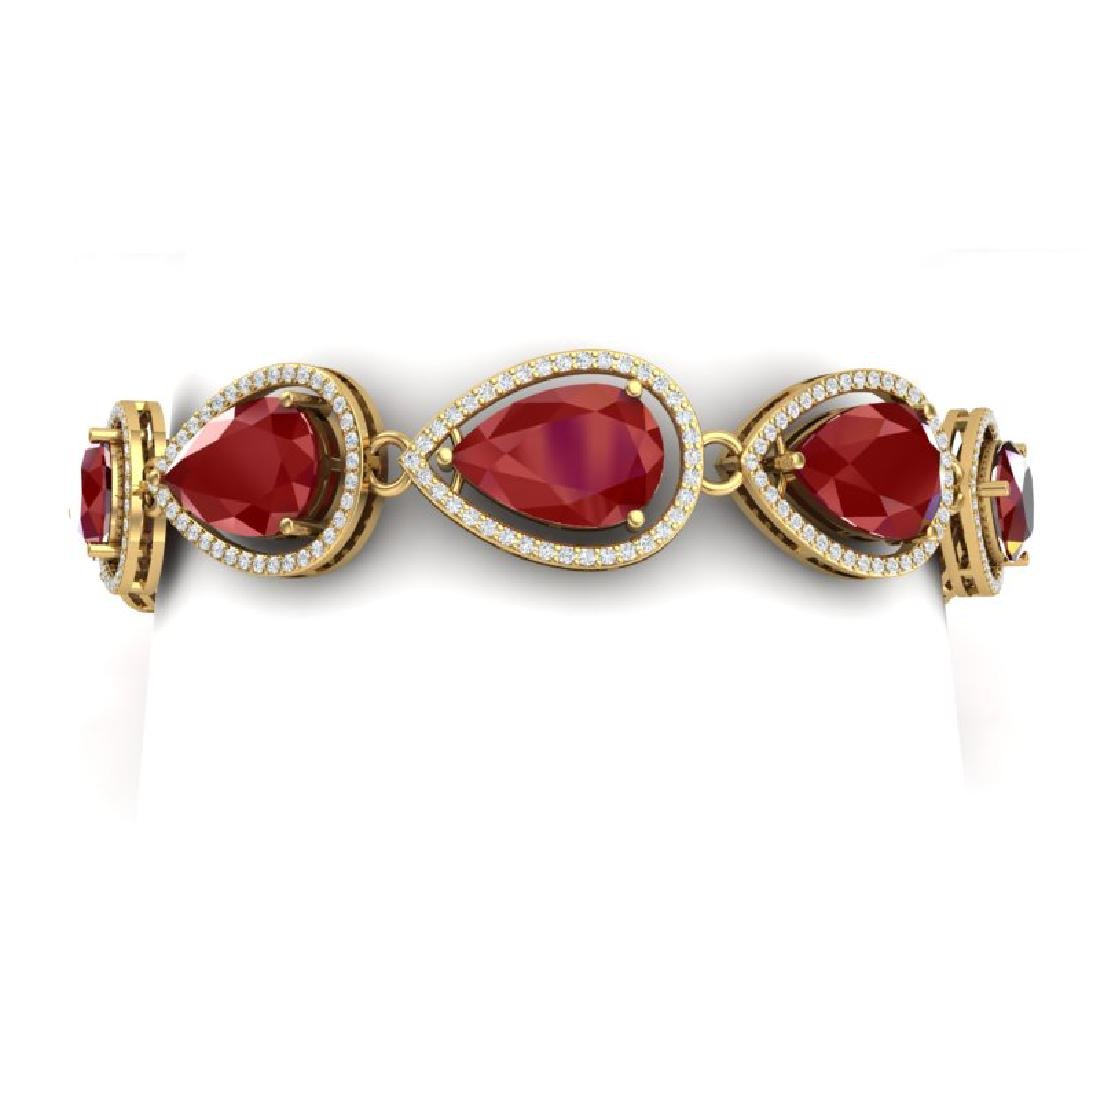 28.31 CTW Royalty Ruby & VS Diamond Bracelet 18K Yellow